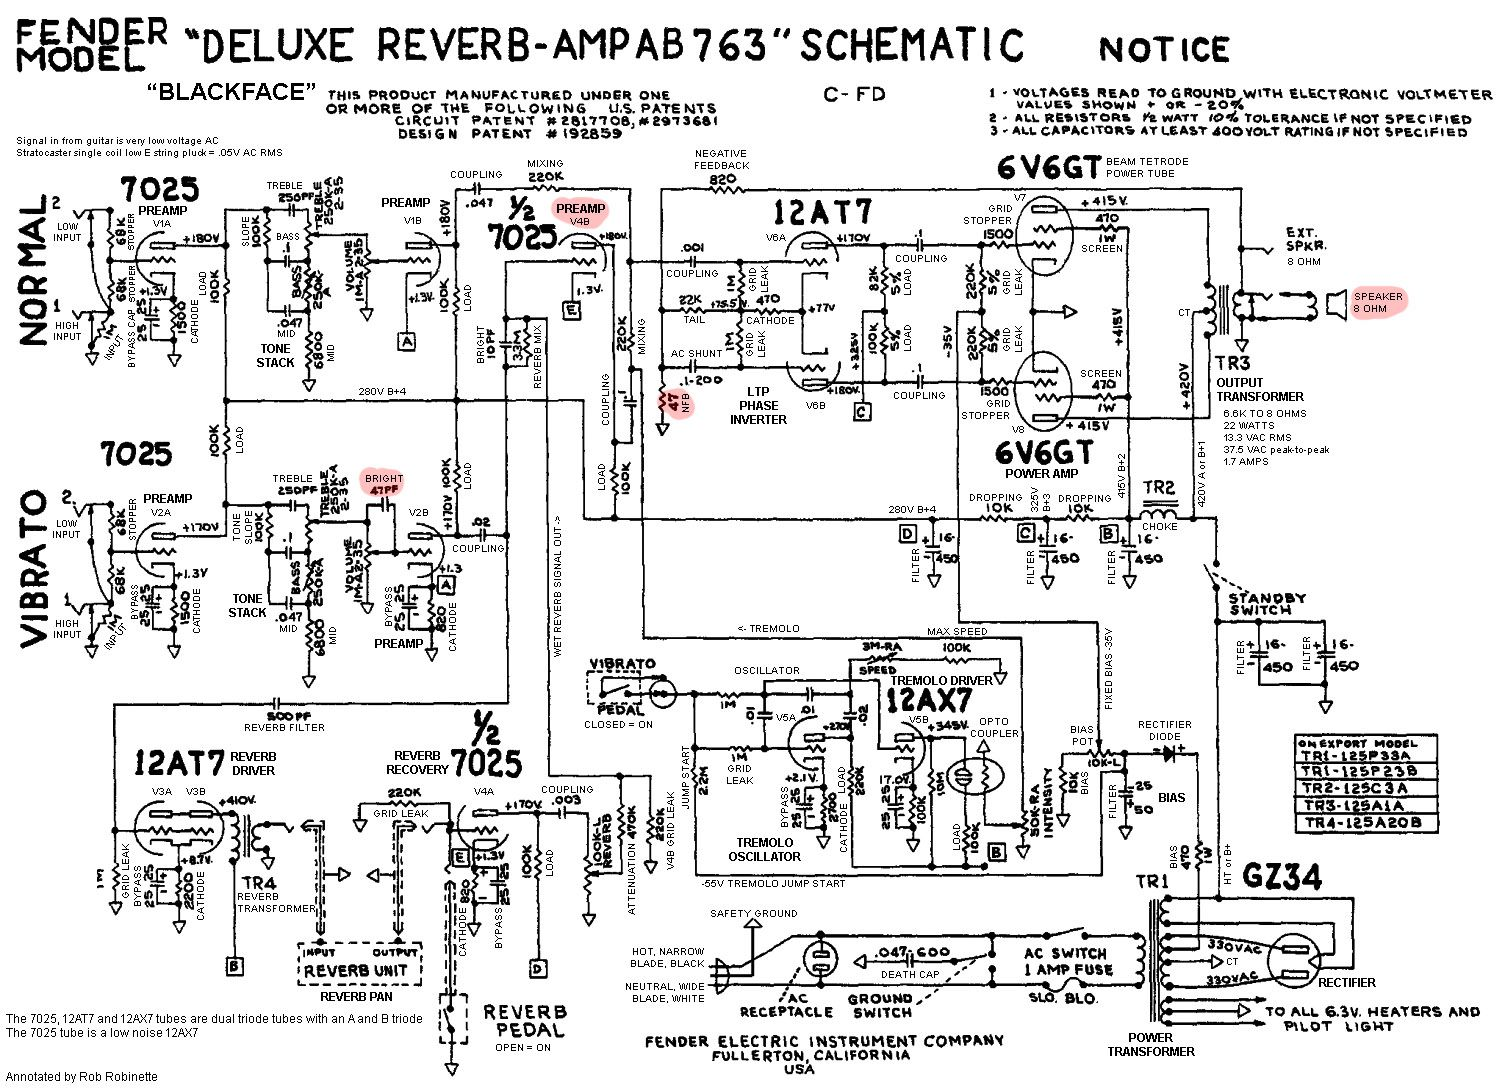 fender deluxe reverb ab763 tube guitar amplifier annotated schematic fender deluxe amp wiring diagram [ 1500 x 1091 Pixel ]